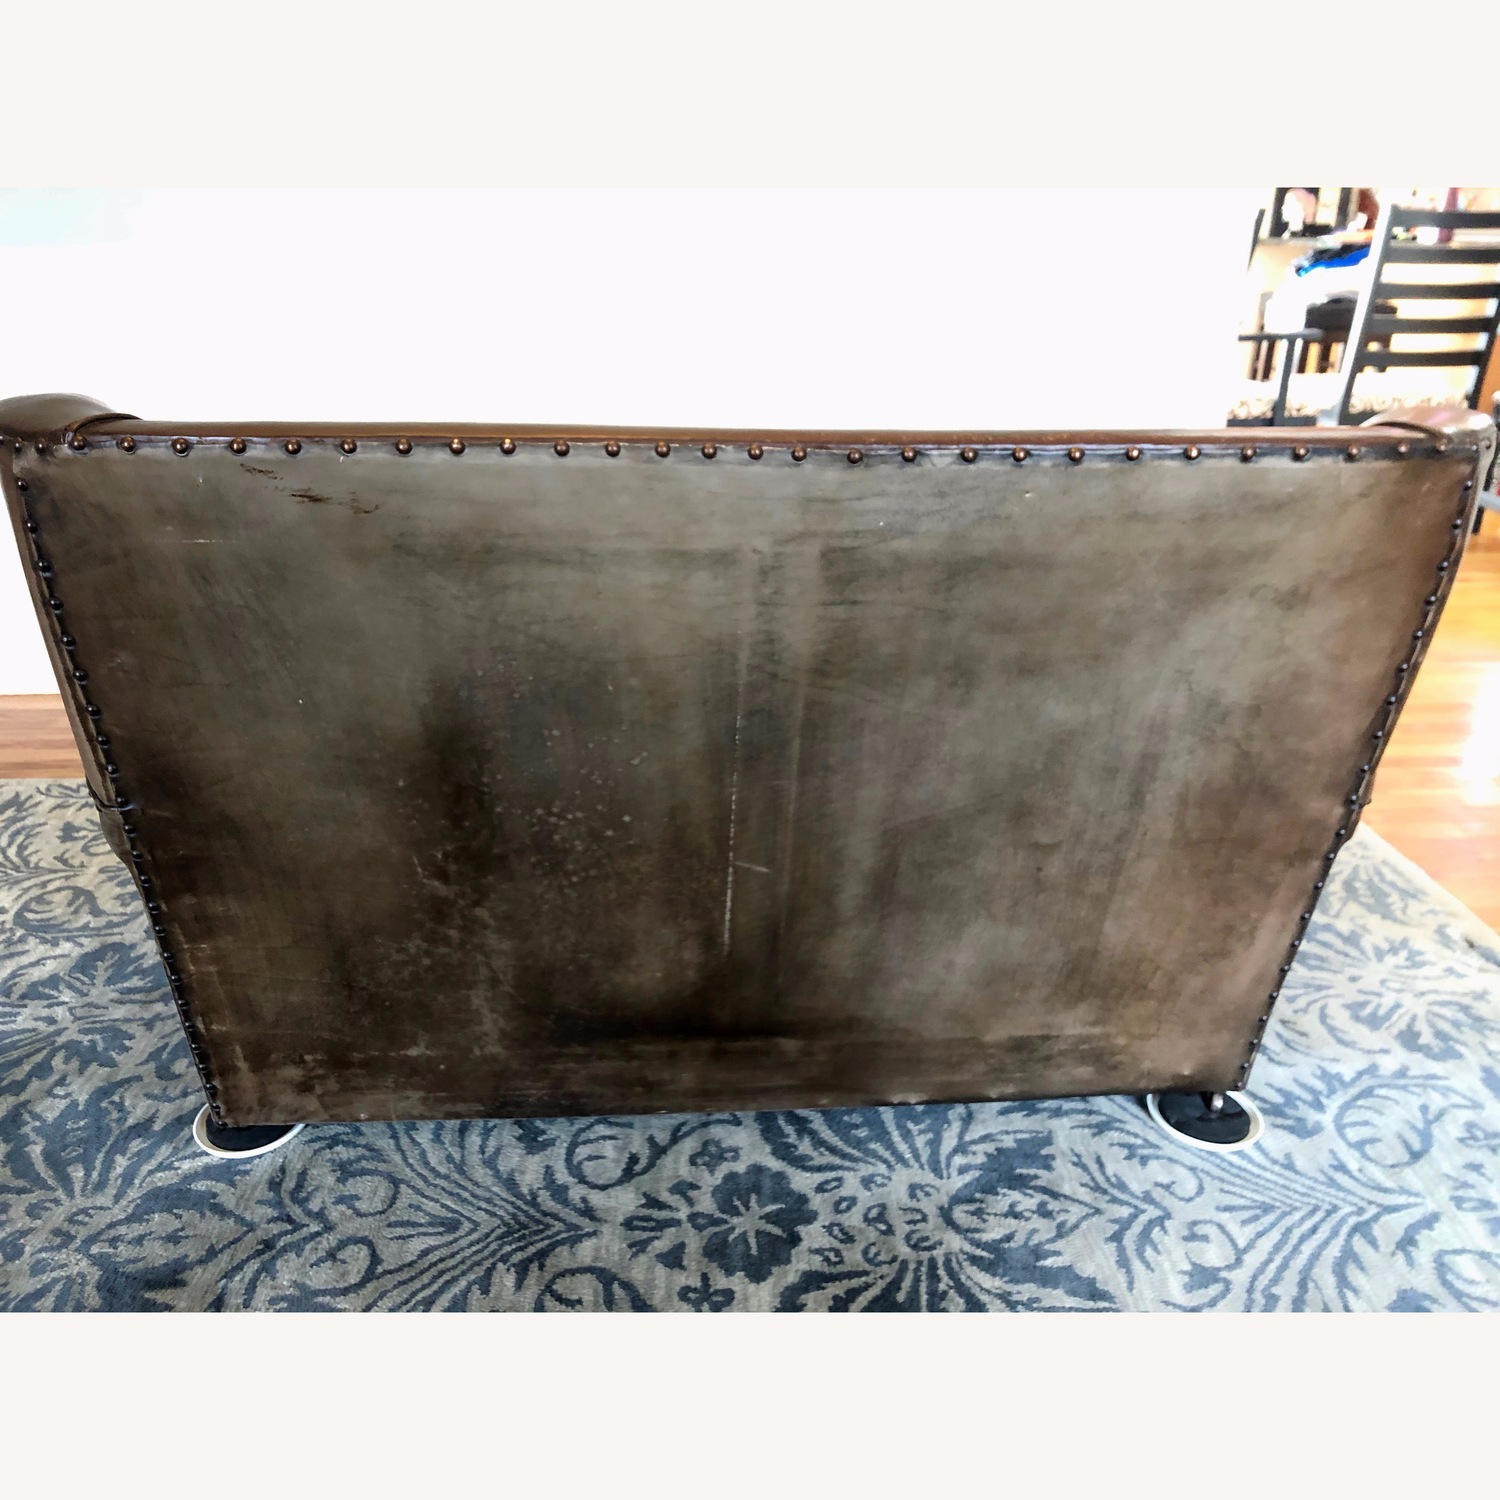 Vintage 1920s French Leather Sofa - image-5